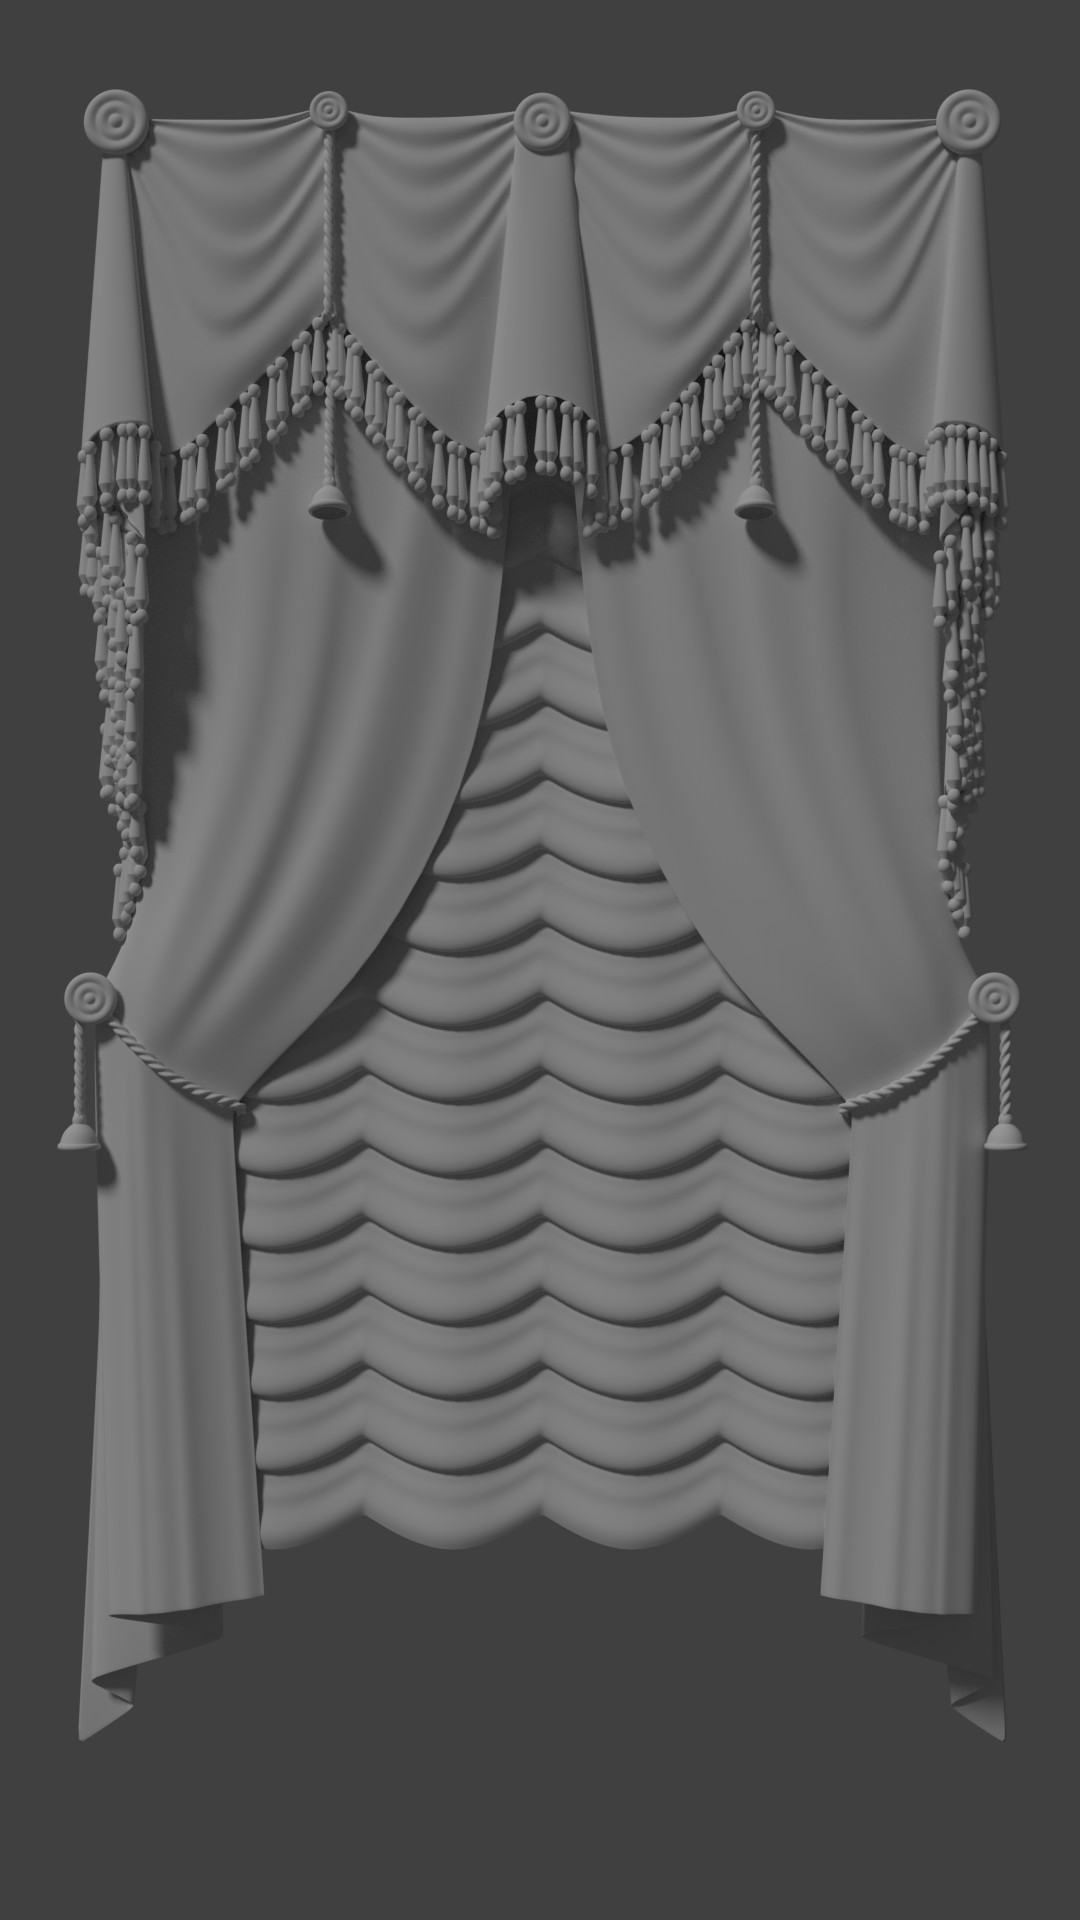 These curtains were the catalyst that took me from making a Christmas tree scene to a full on living room. They were kind of a doodle I ended up needing a scene for since I liked them so much.